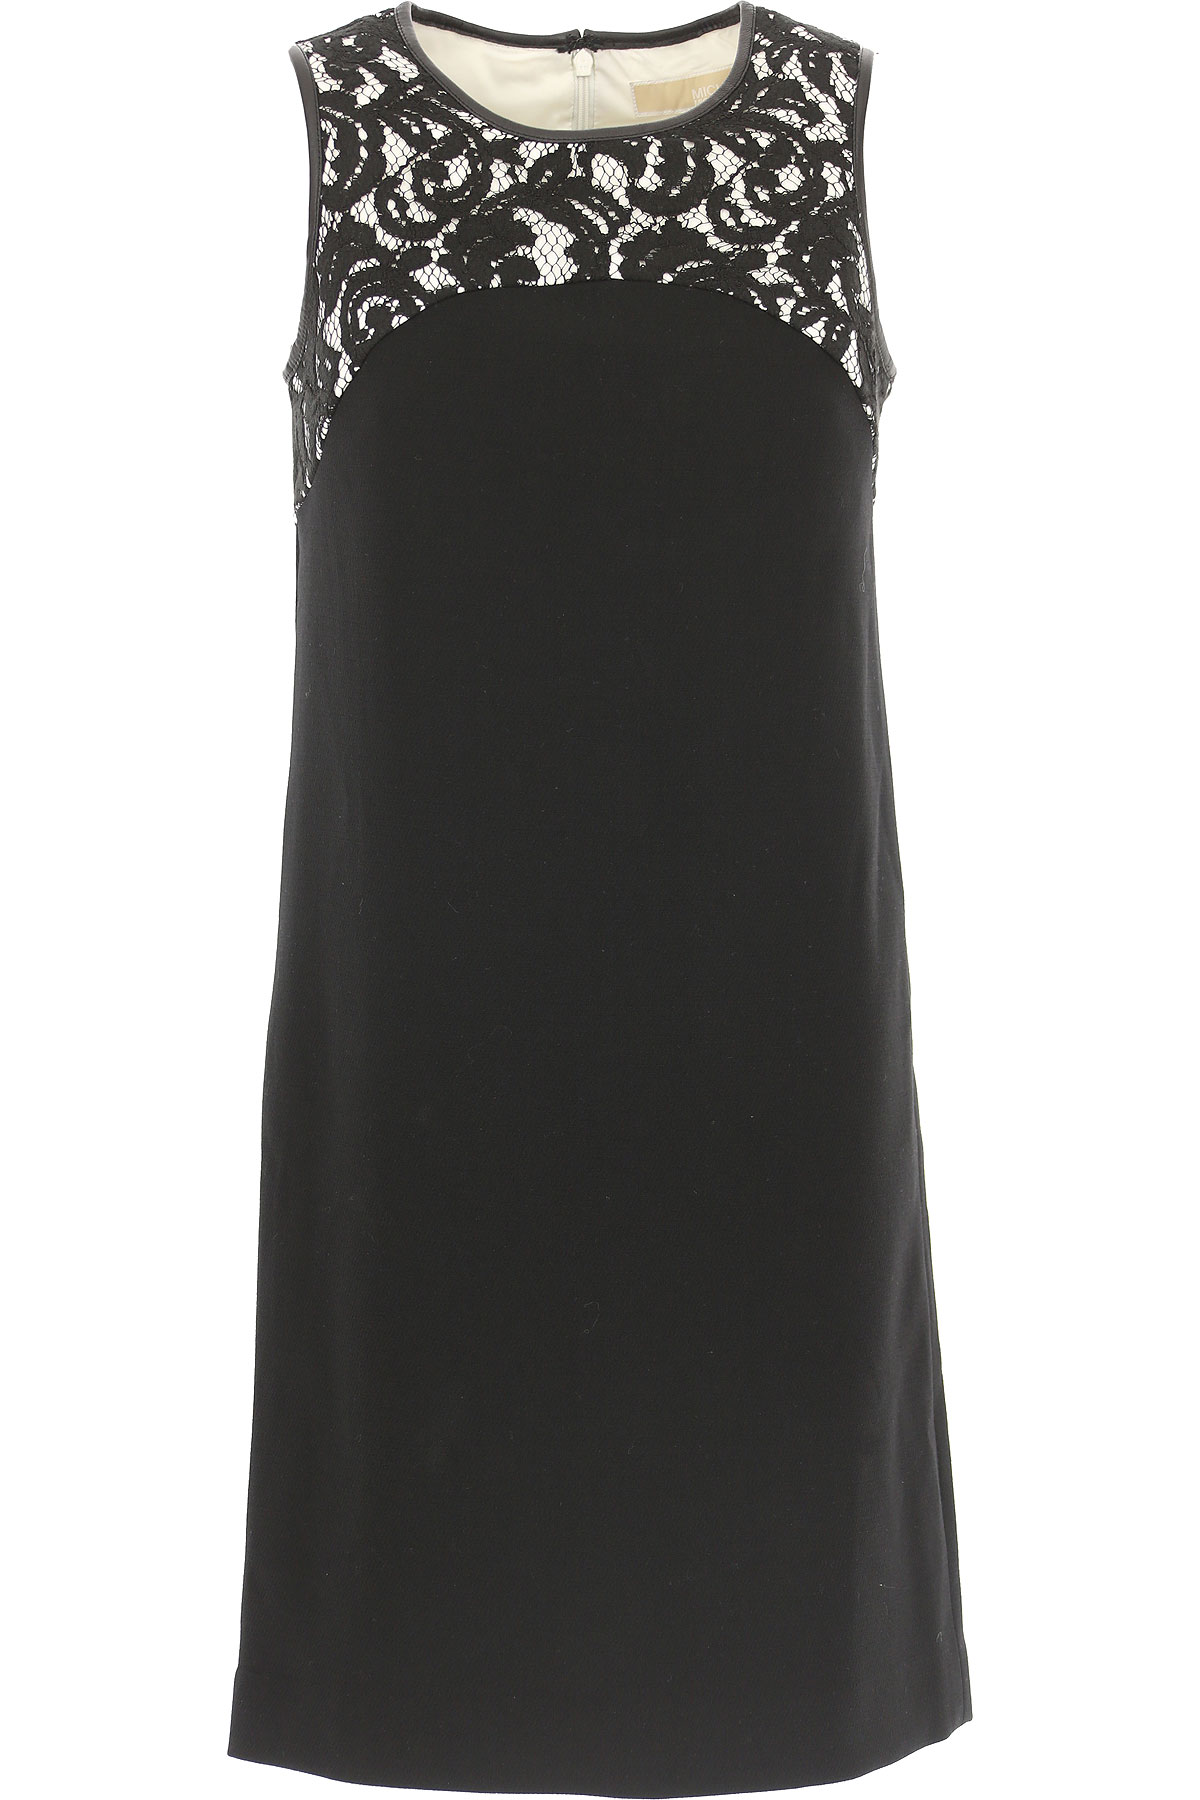 Michael Kors Dress for Women, Evening Cocktail Party On Sale in Outlet, Black, polyester, 2019, IT 38 - US 0 - F 34 IT 40 - US 2 - F 36 IT 42 - US 4 -